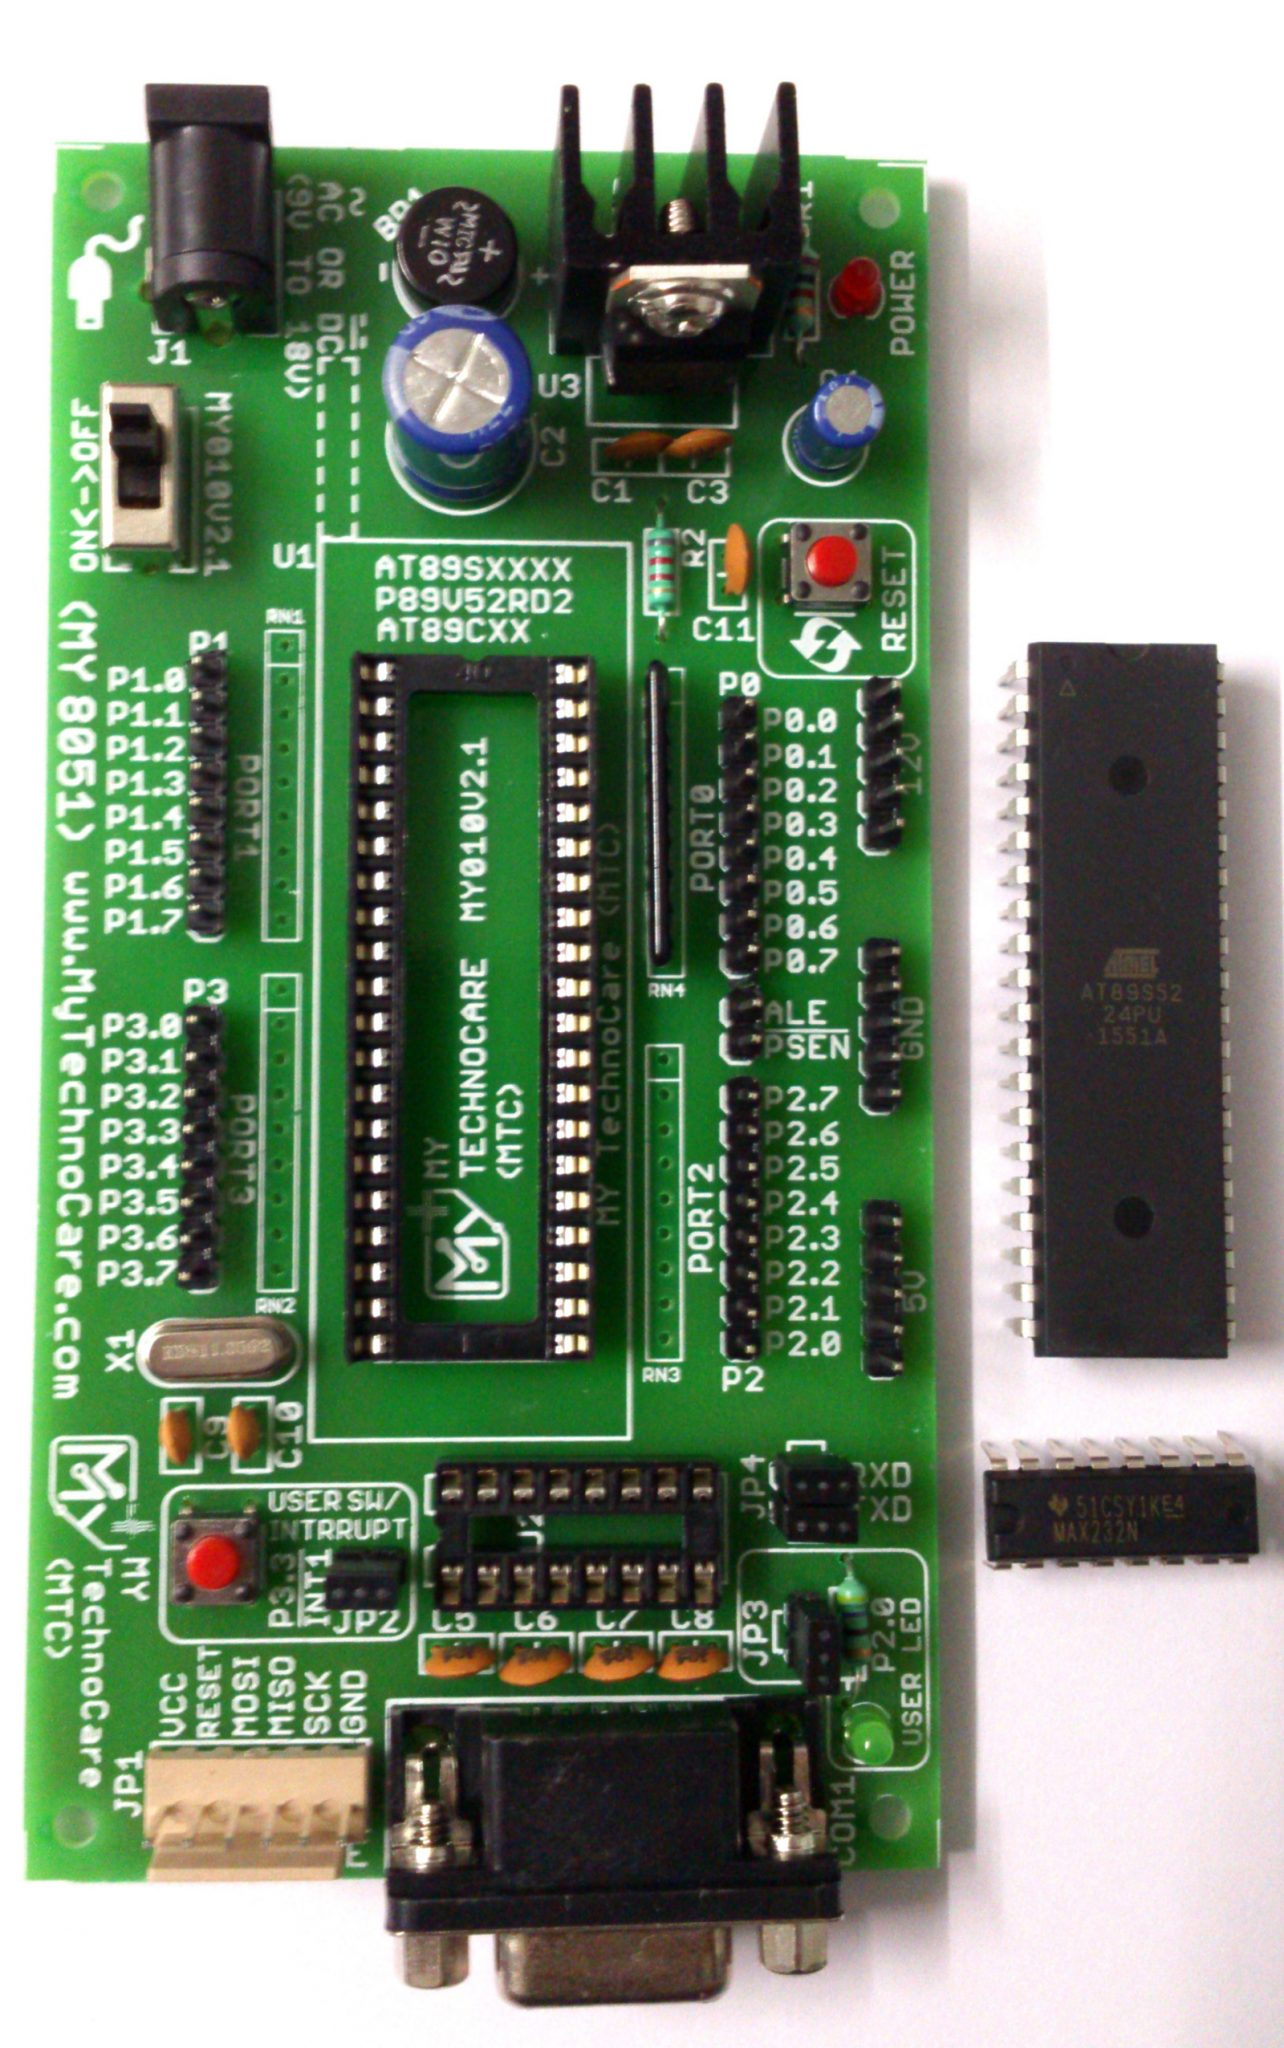 8051 Development Board Microcontroller Project Kit My Technocare Low Cost Arm Microcontrollers Dev Buy Atmel With Max232 At89s52 Ic Support At89s51